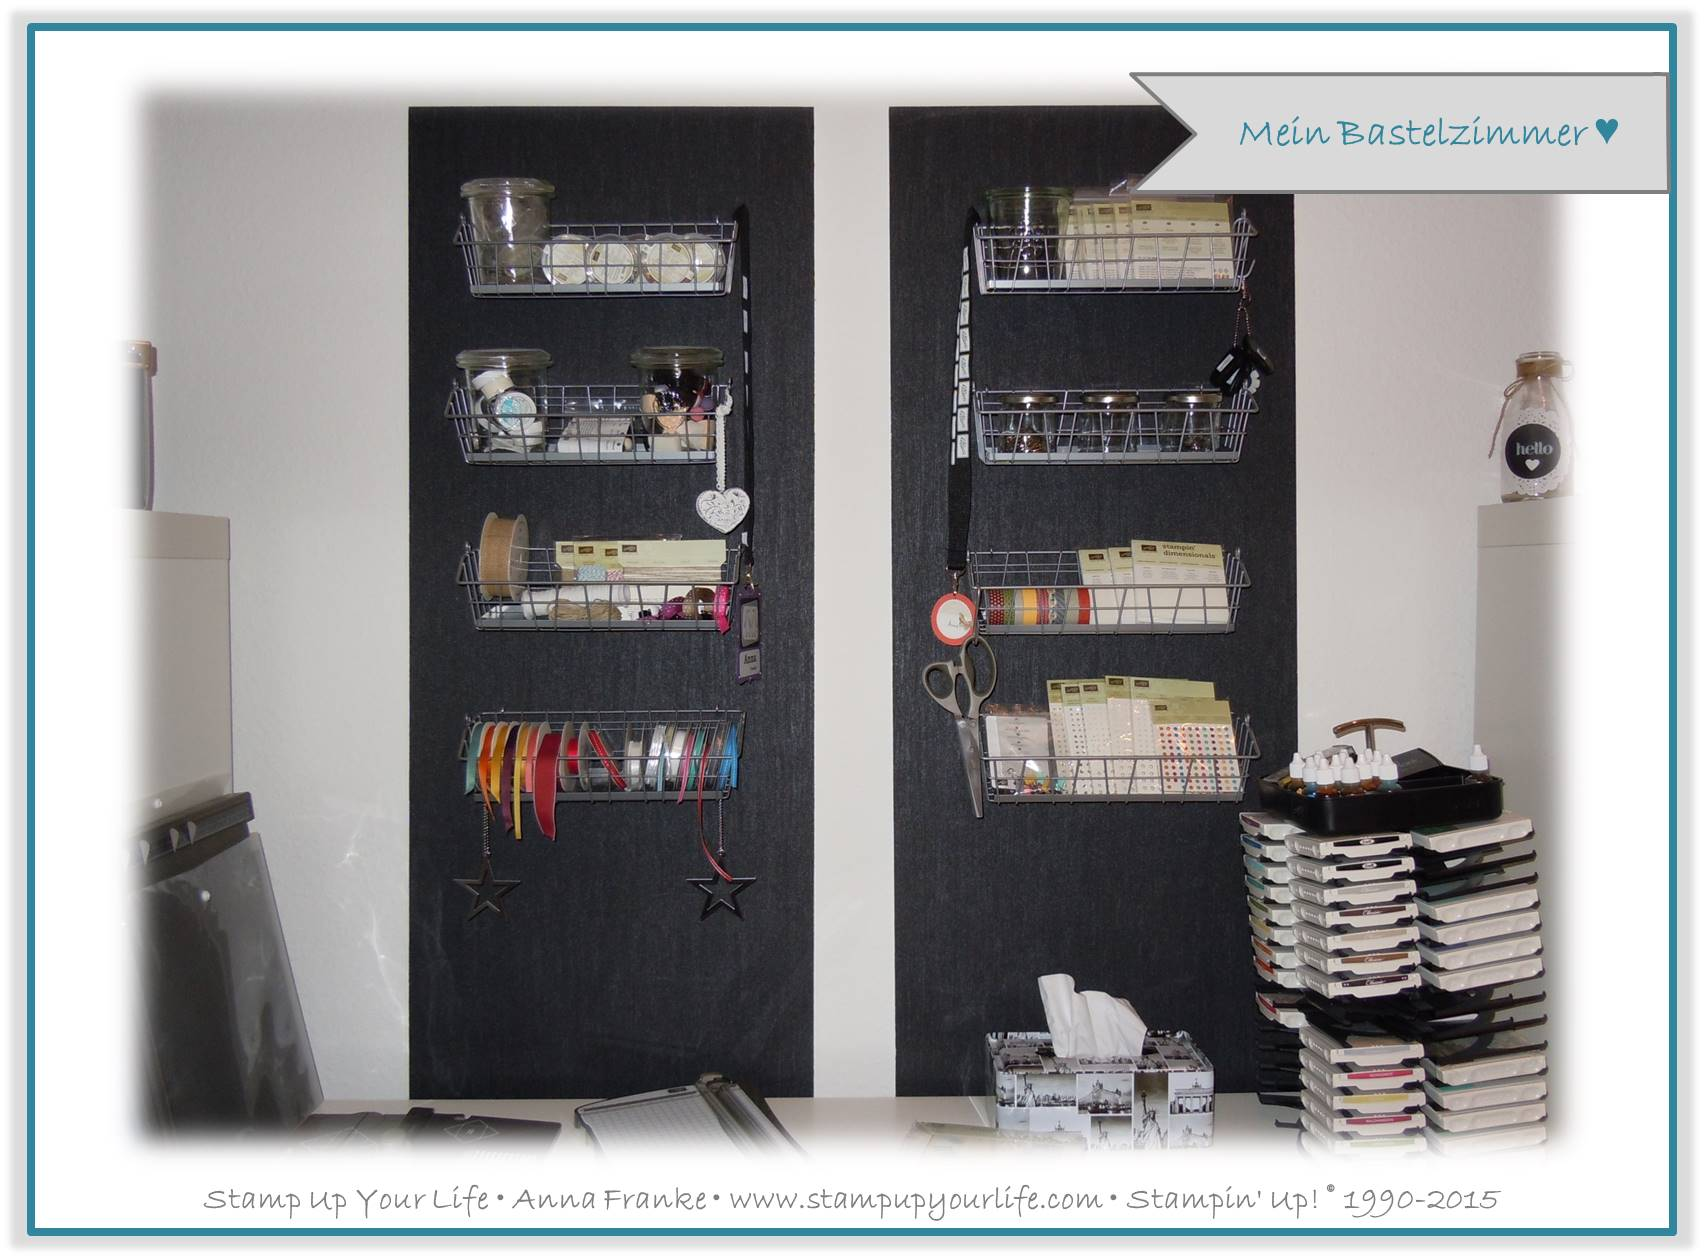 angebote diese woche bei netto. Black Bedroom Furniture Sets. Home Design Ideas